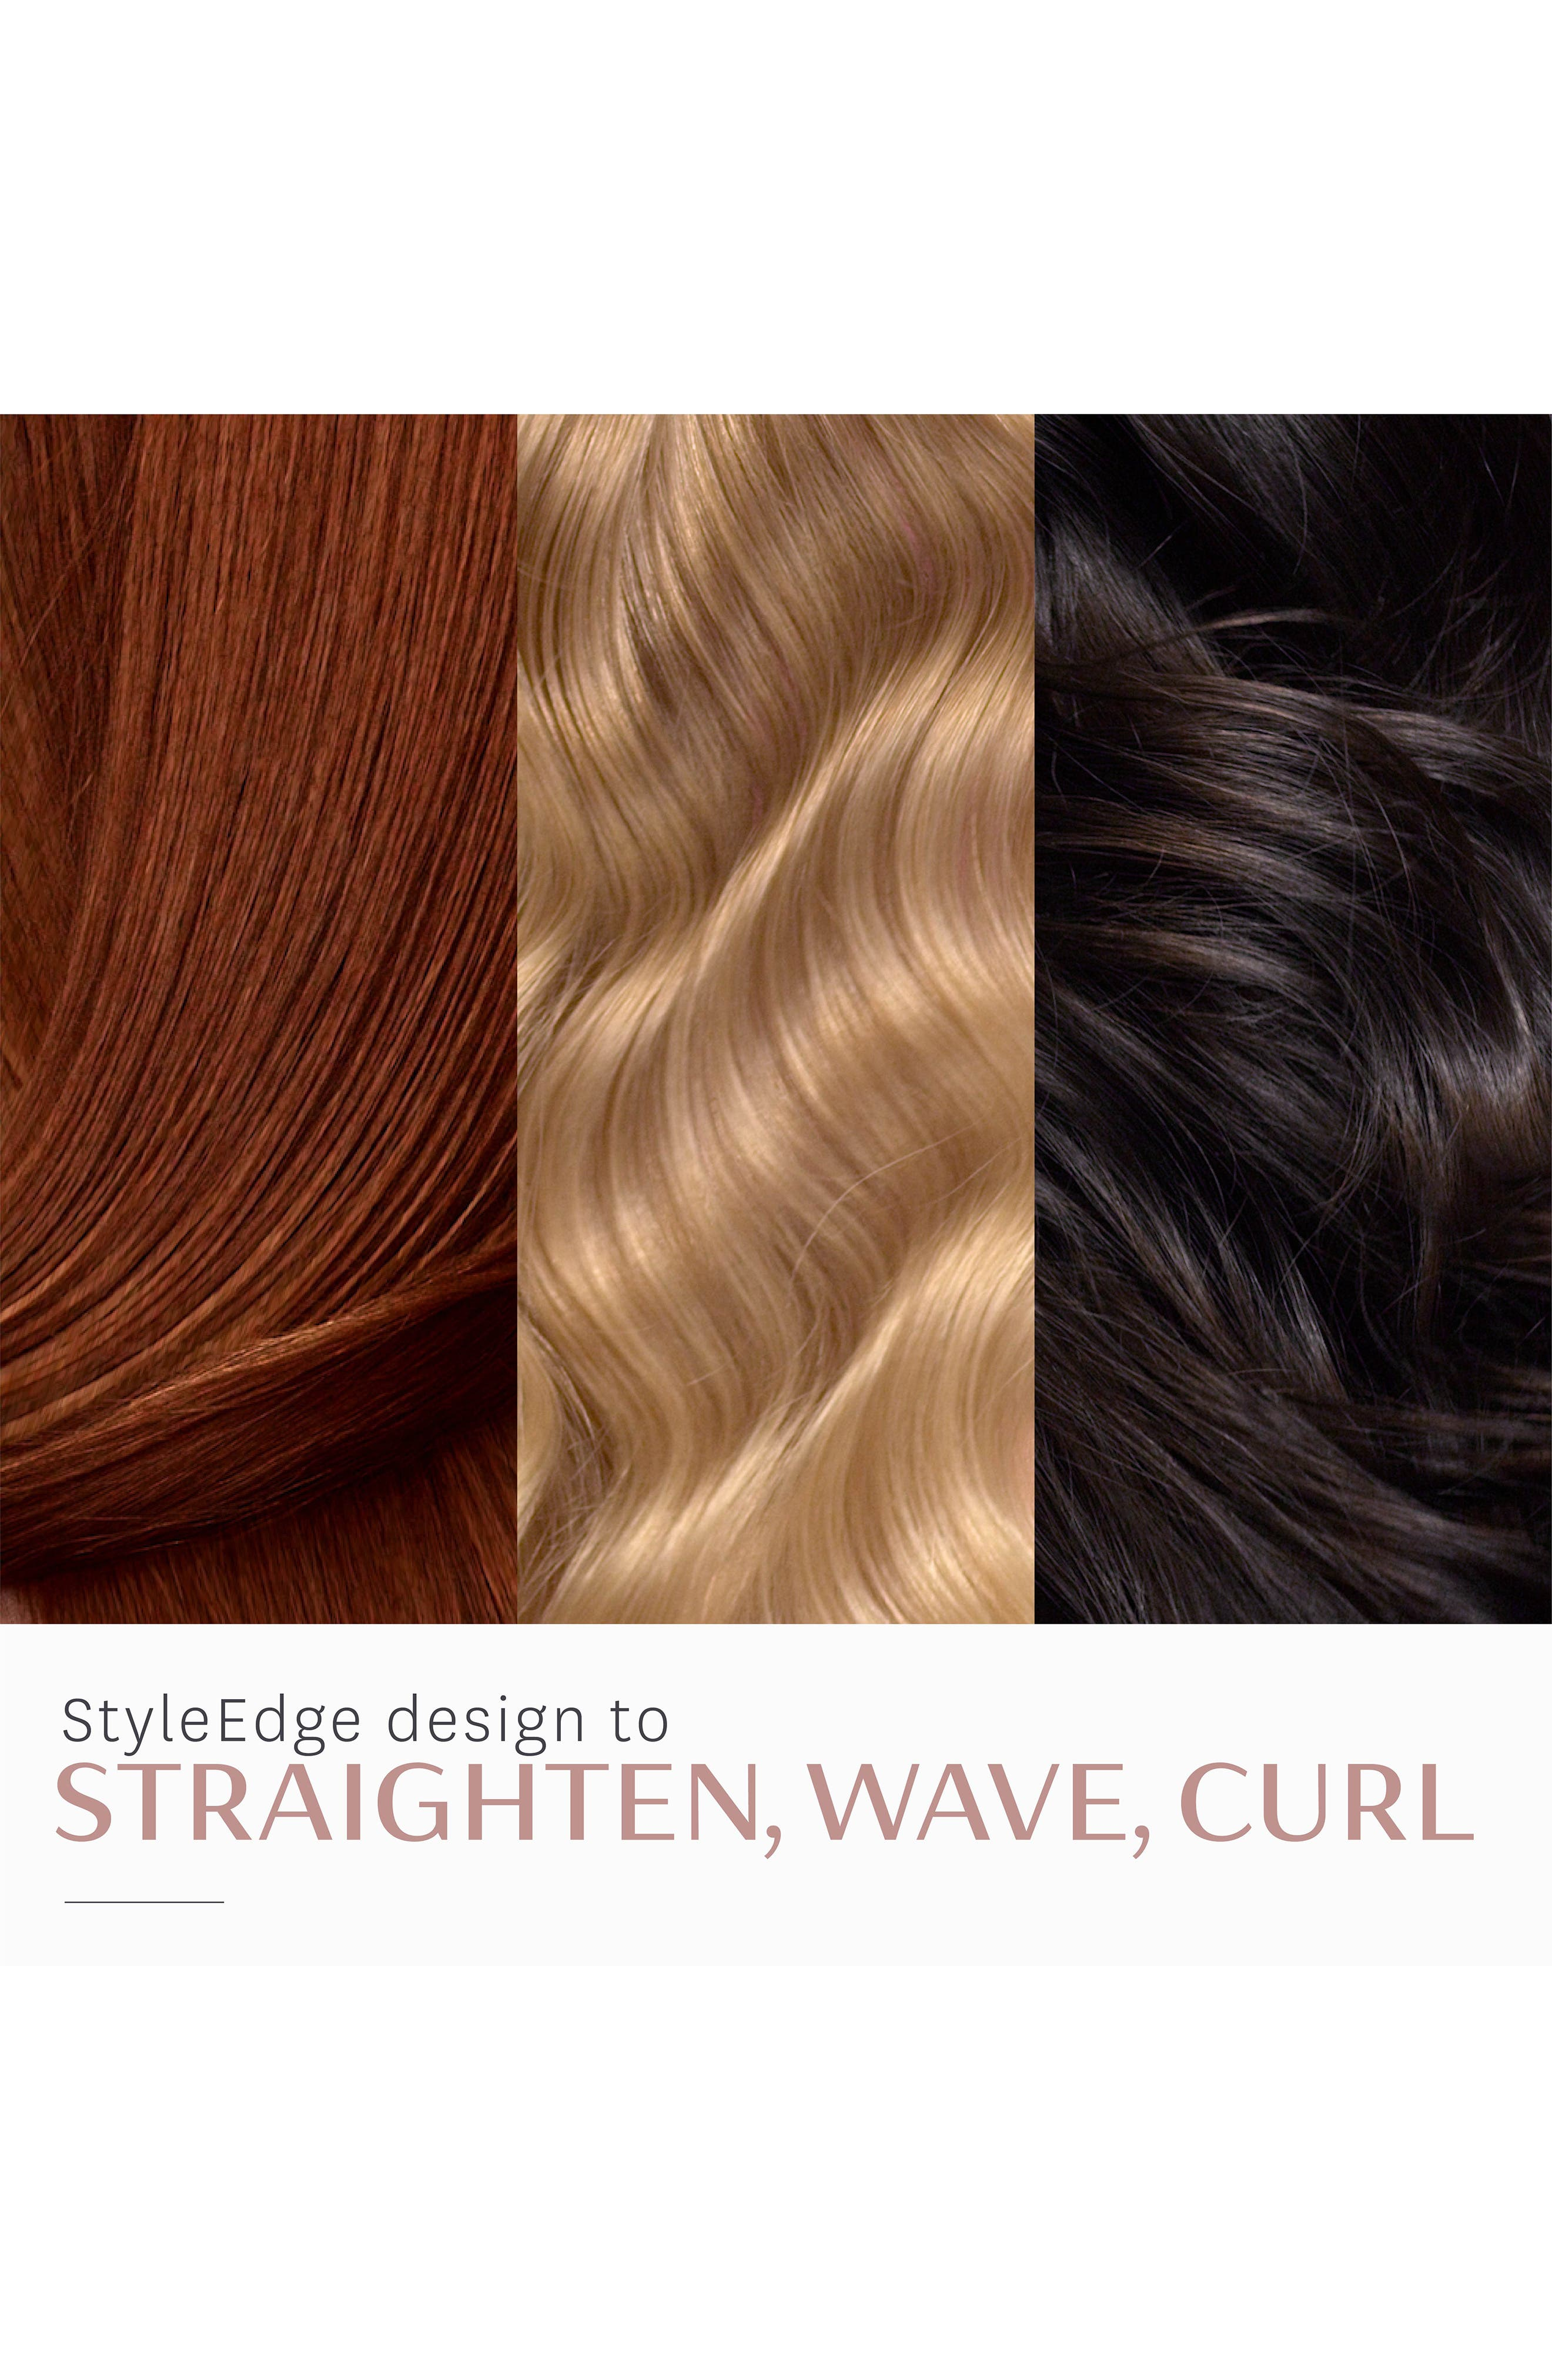 T3,                             SinglePass Luxe 1-Inch Ionic Straightening & Styling Flat Iron,                             Alternate thumbnail 6, color,                             NO COLOR